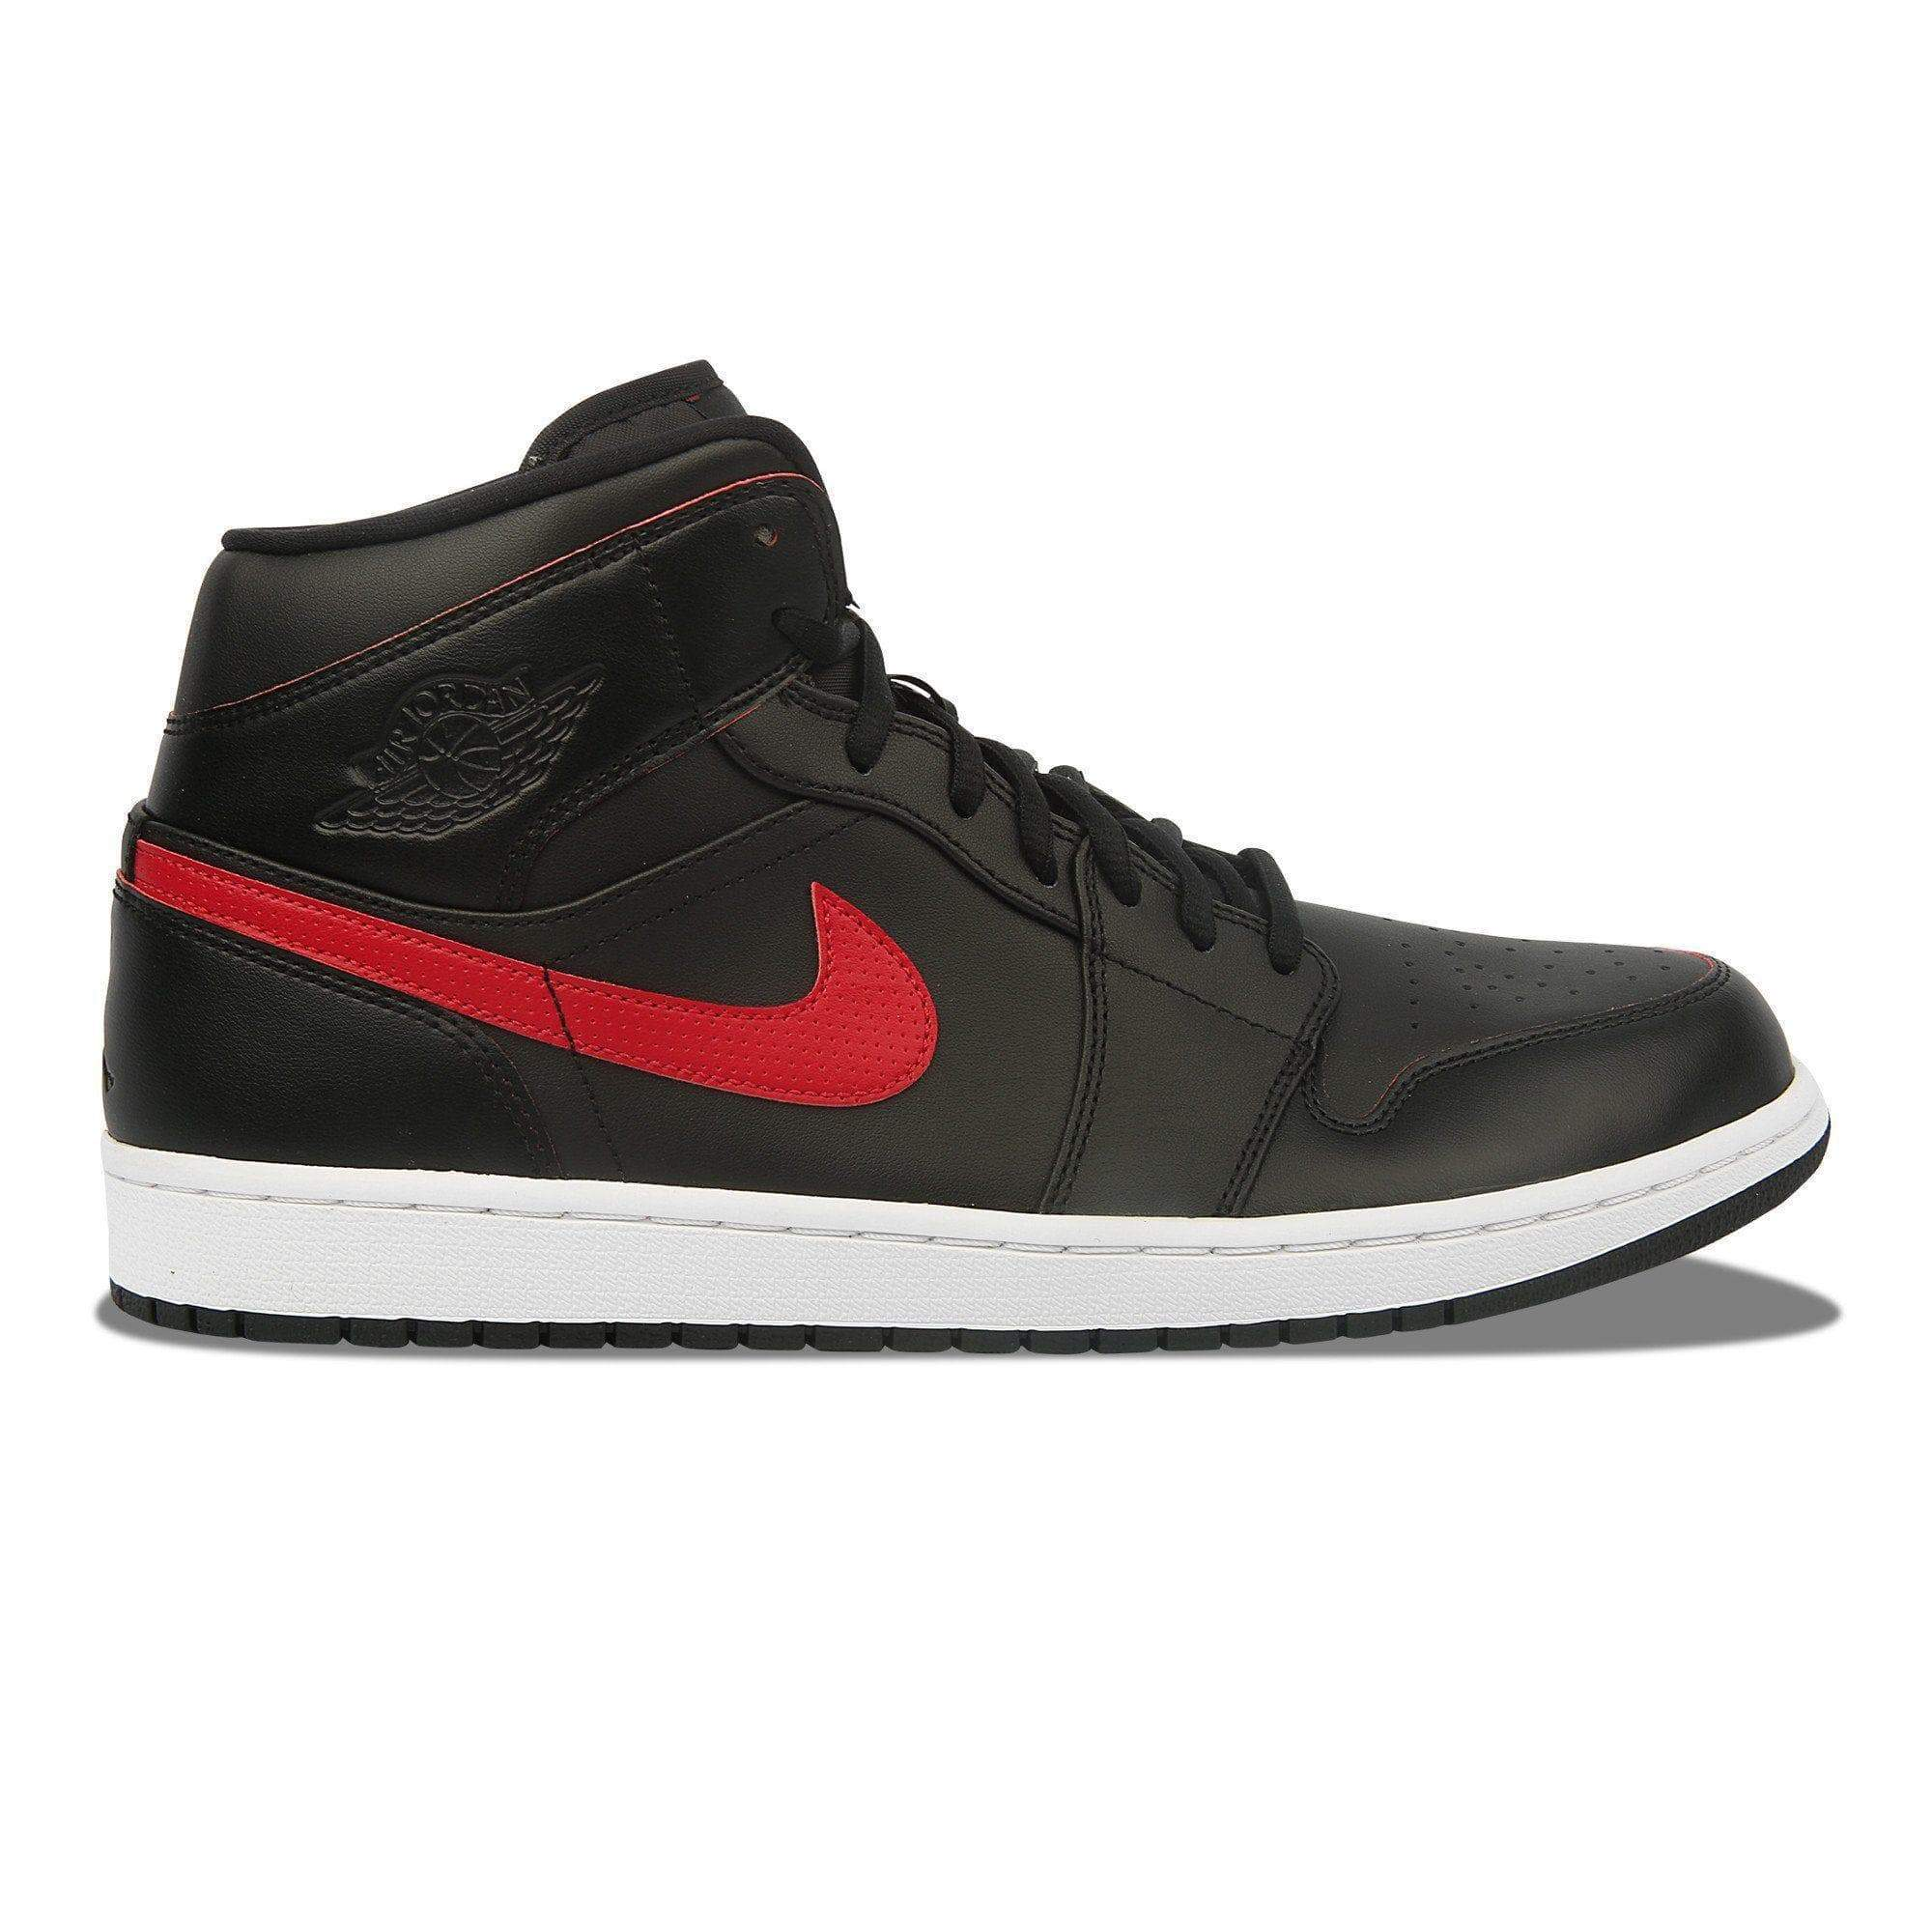 3cbc293319fd FOOTWEAR - Air Jordan 1 Mid - Men s